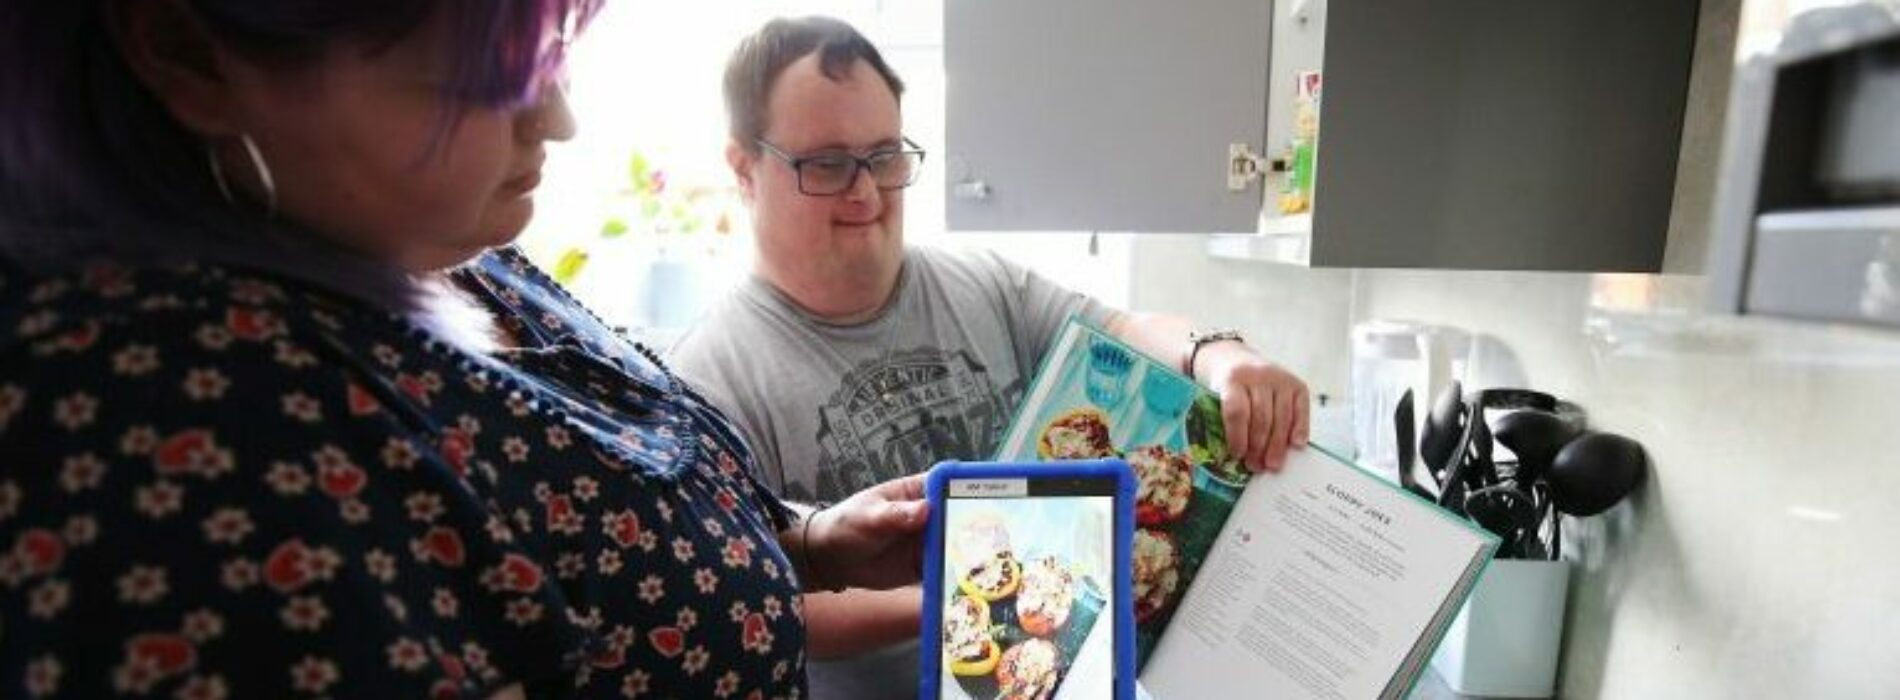 Vodafone and Mencap partnership aims to improve the lives of people with learning disabilities